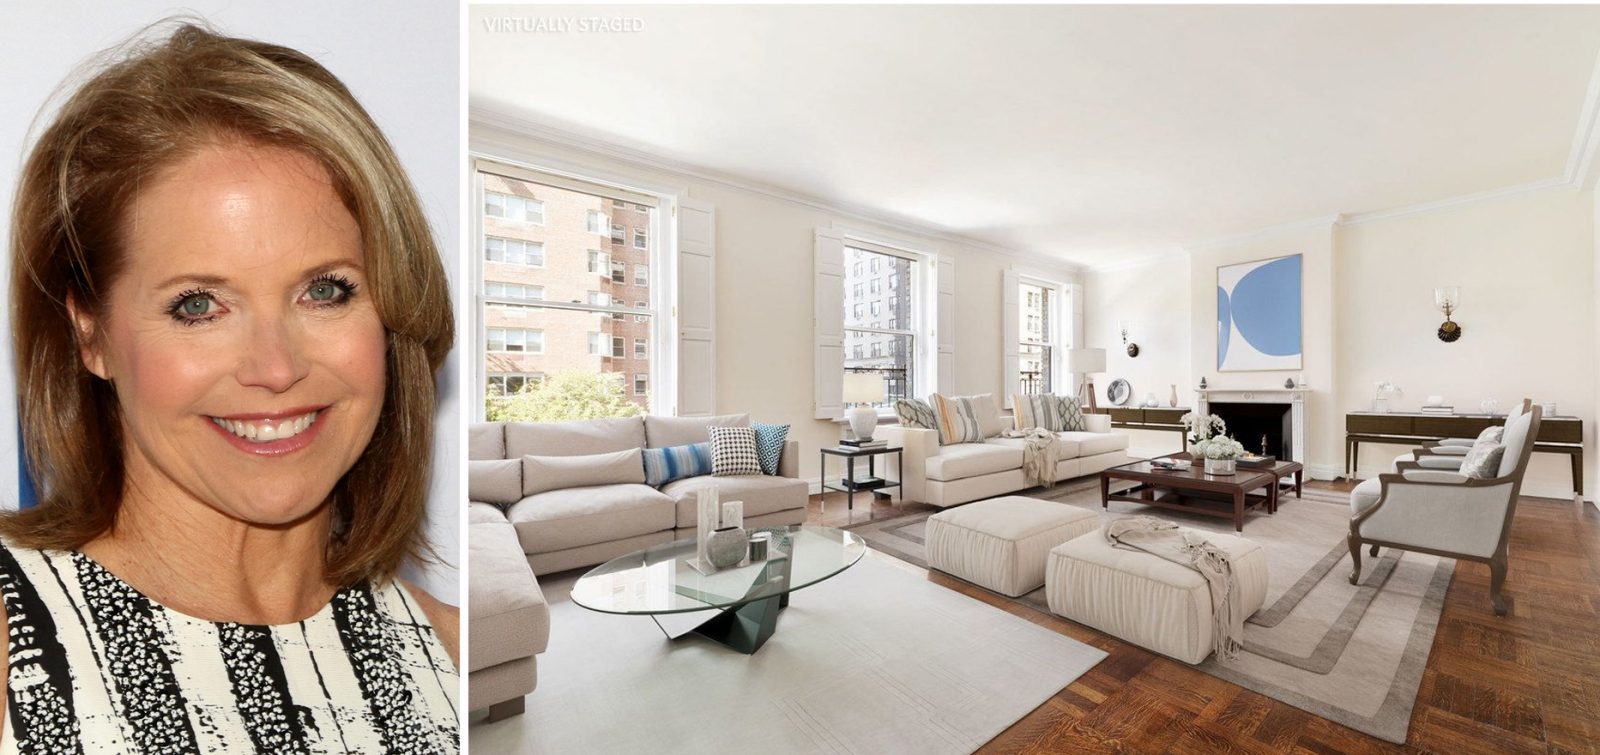 Last October News Anchor Katie Couric Decided To Put Her Longtime Carnegie Hill Apartment On The Market In February 2018 It Went Into Contract And Now We